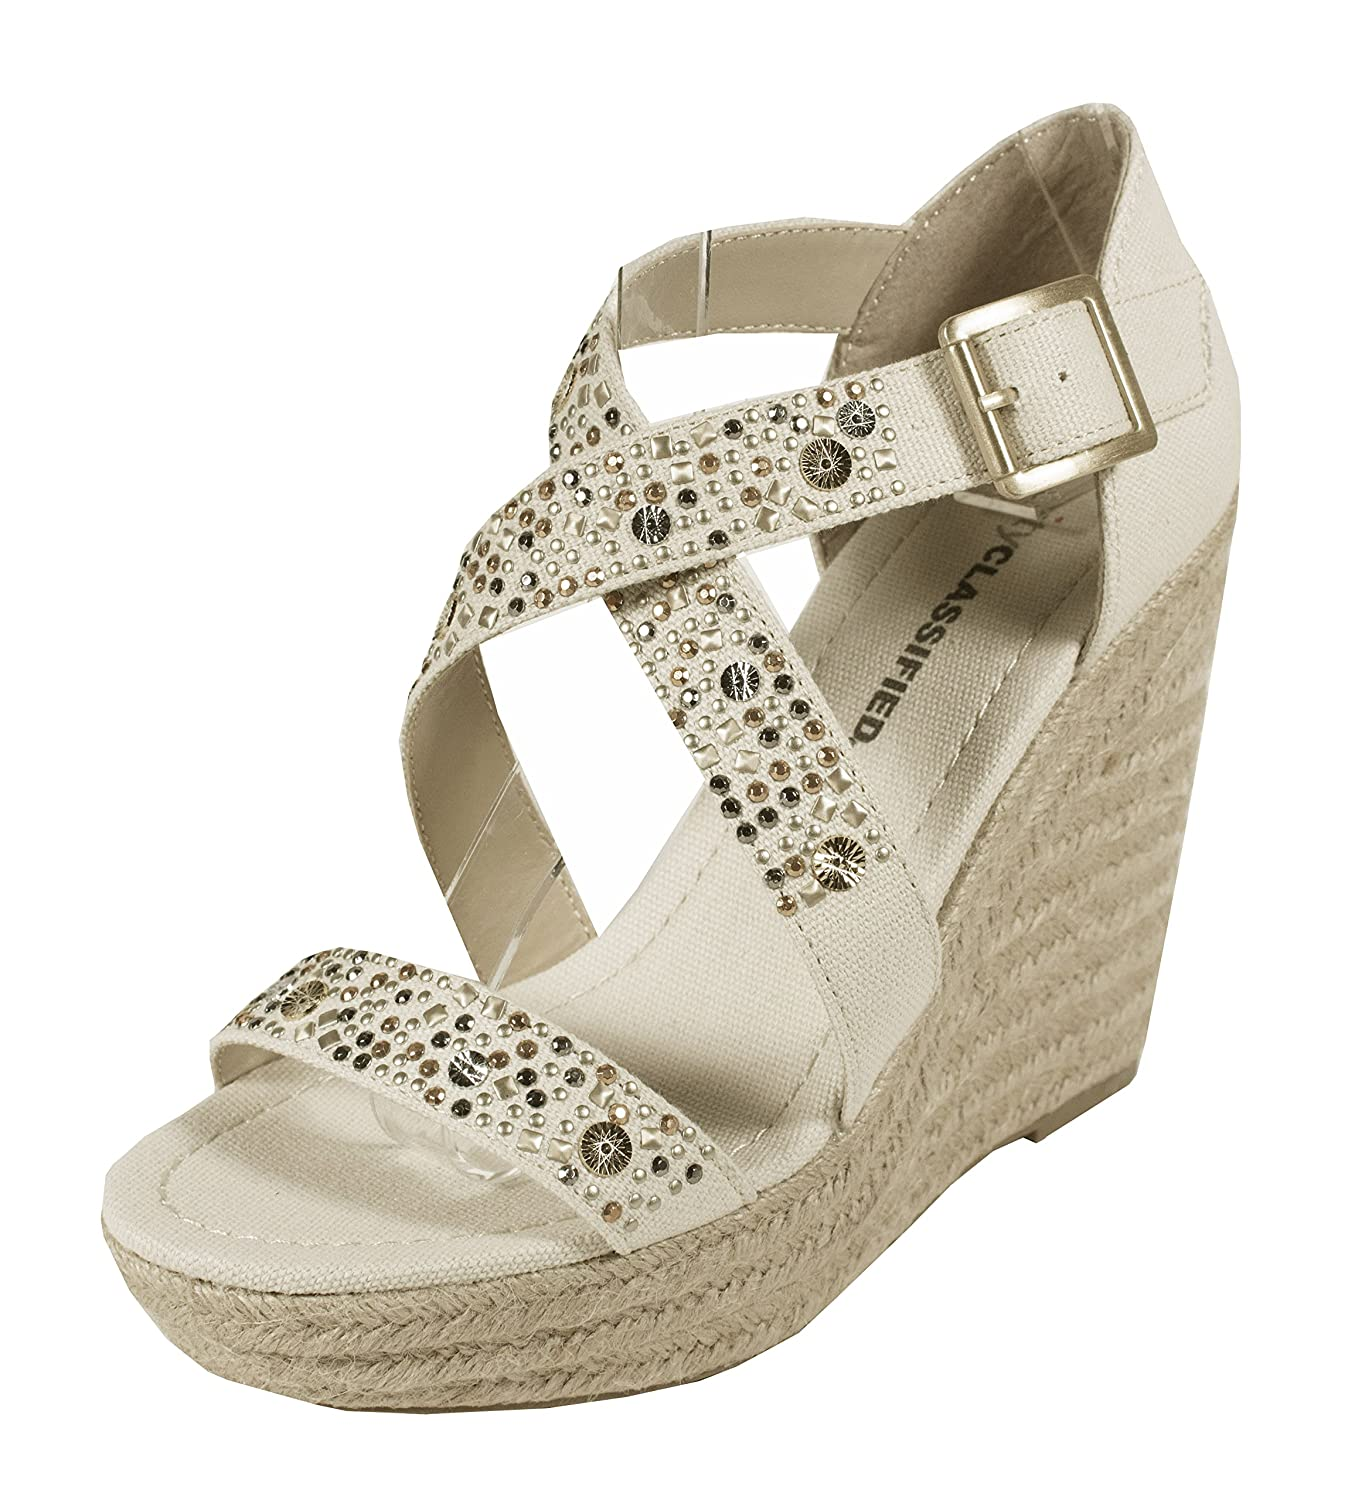 SOFIA! City Classified Women's Studded Detailing CrissCross Strap Espadrille Platform Wedge Sandal in Beige Cotton B00BFGBRXC 6.5 B(M) US